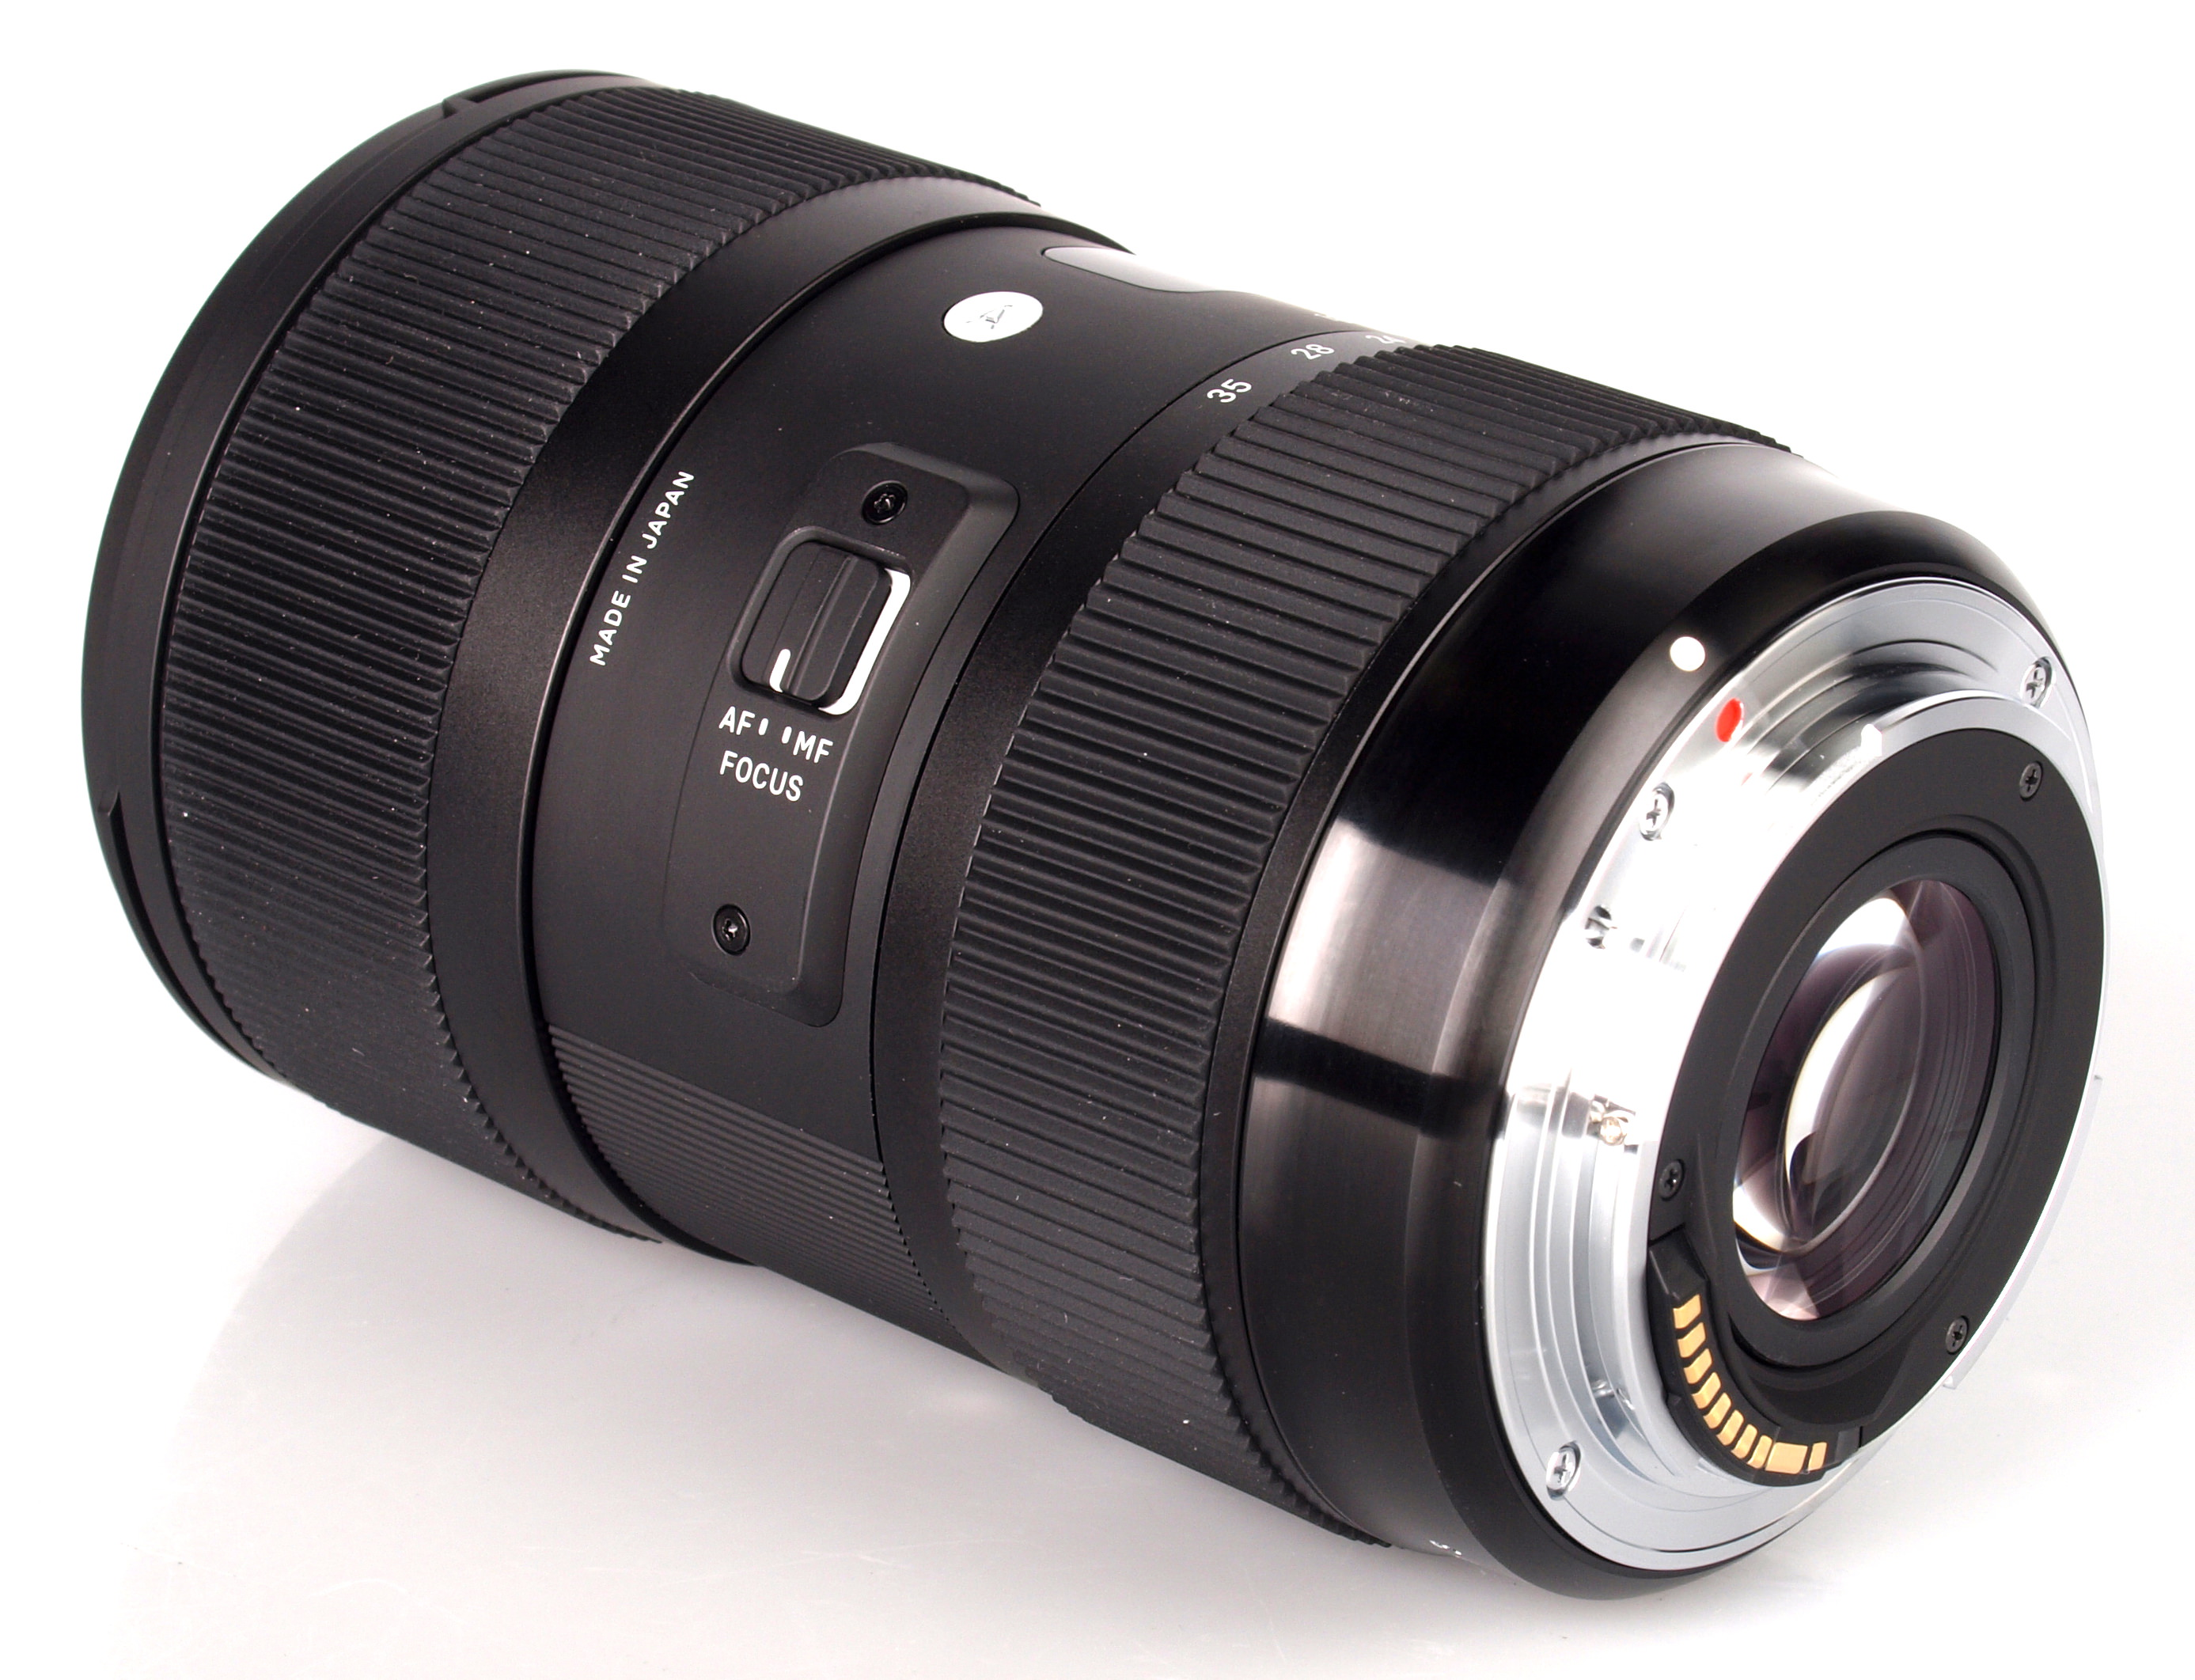 Sigma 18-35mm f/1.8 DC HSM A Lens Review